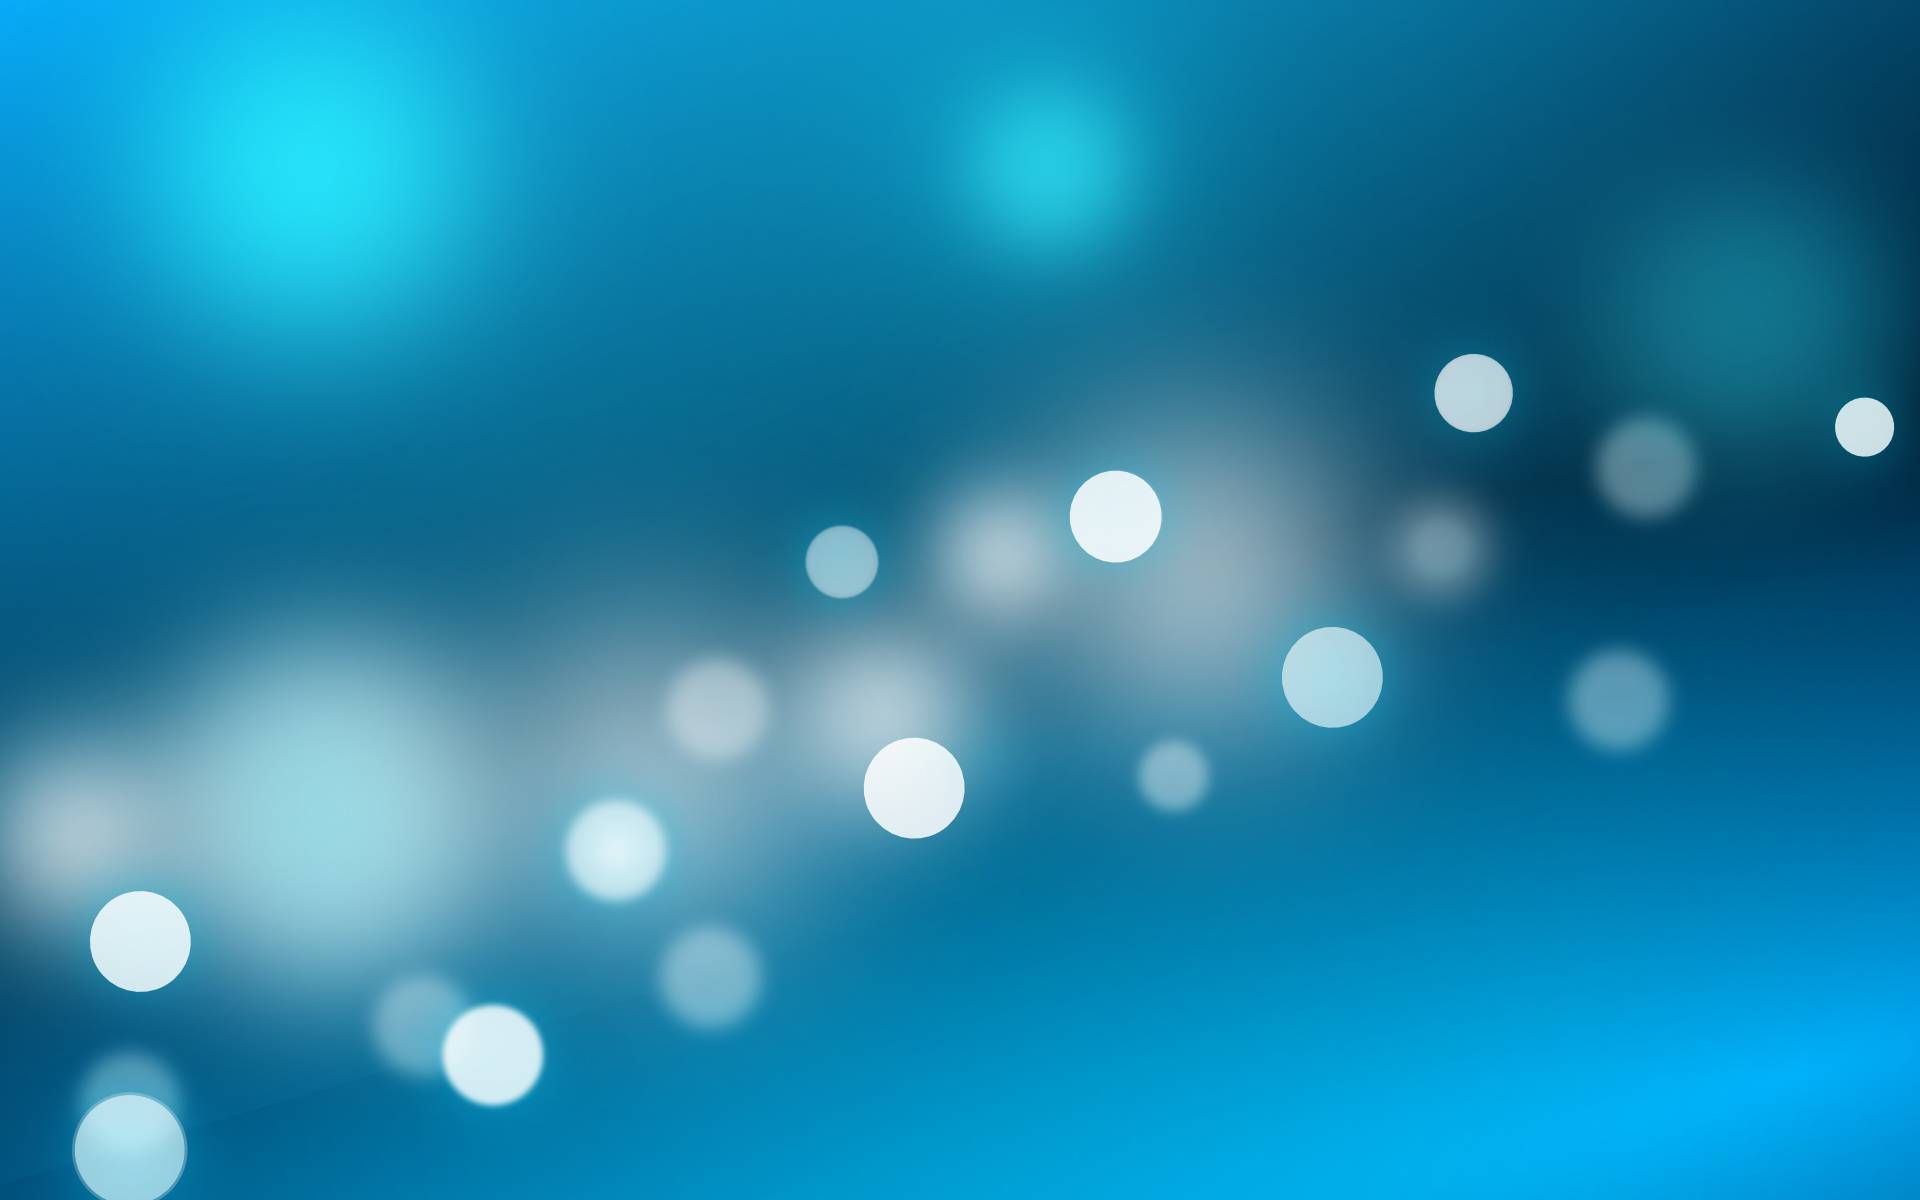 Abstract blue bokeh wallpaper HQ WALLPAPER - (#46)